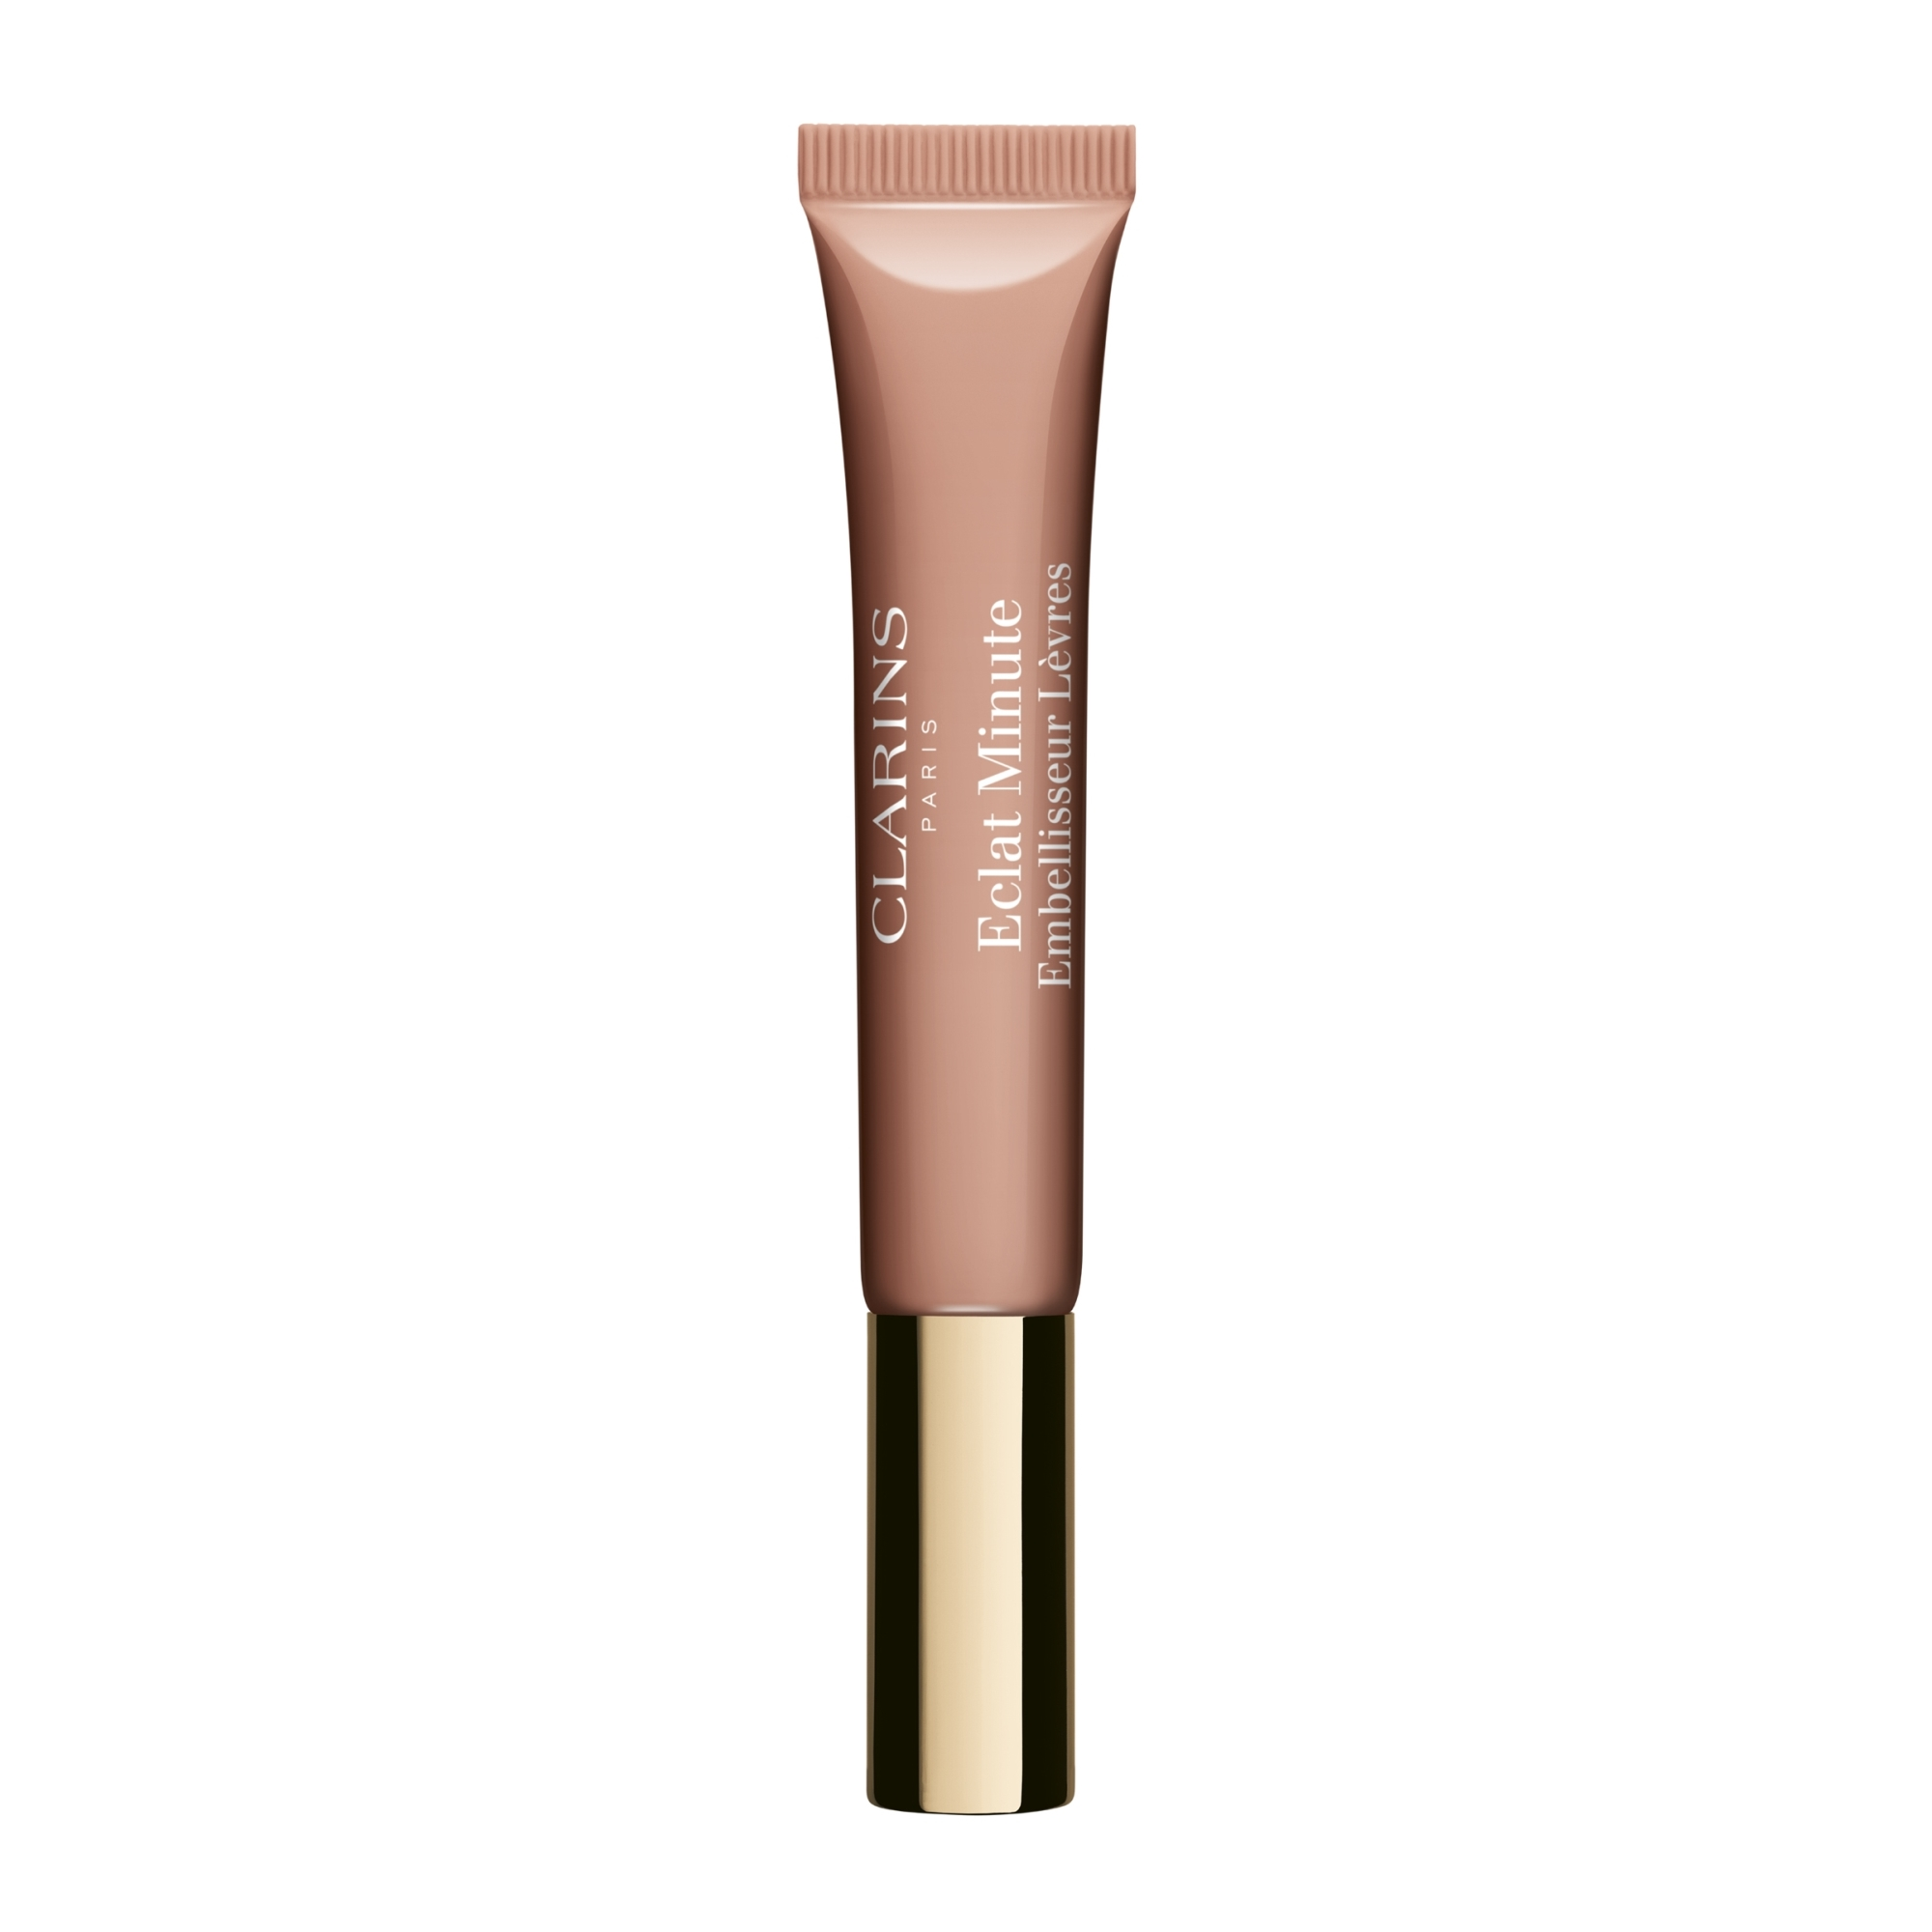 Instant Light Natural Lip Perfector 03 Beige Shimmer